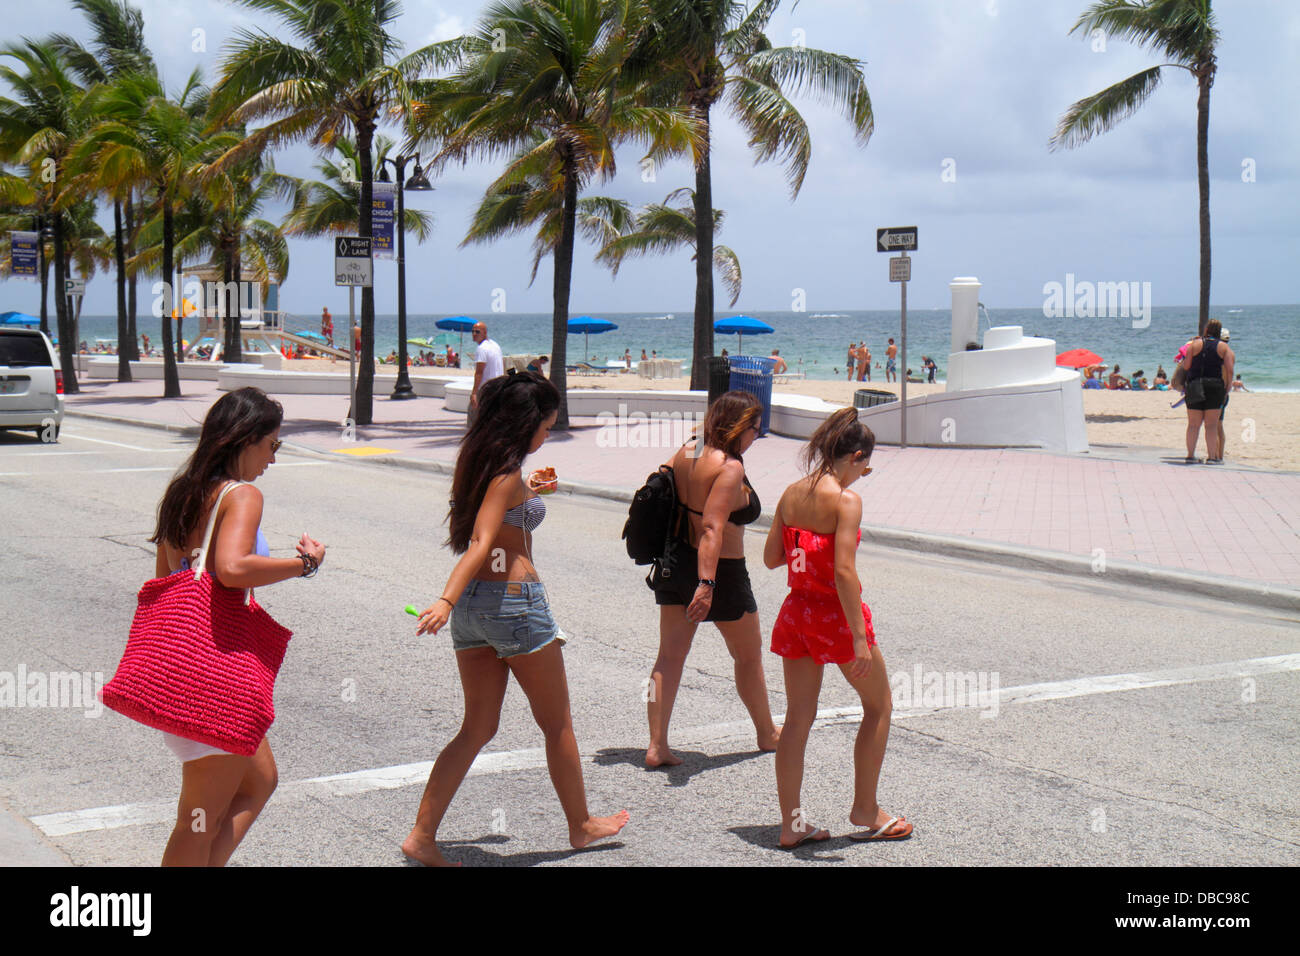 Are not teen girls crossing florida